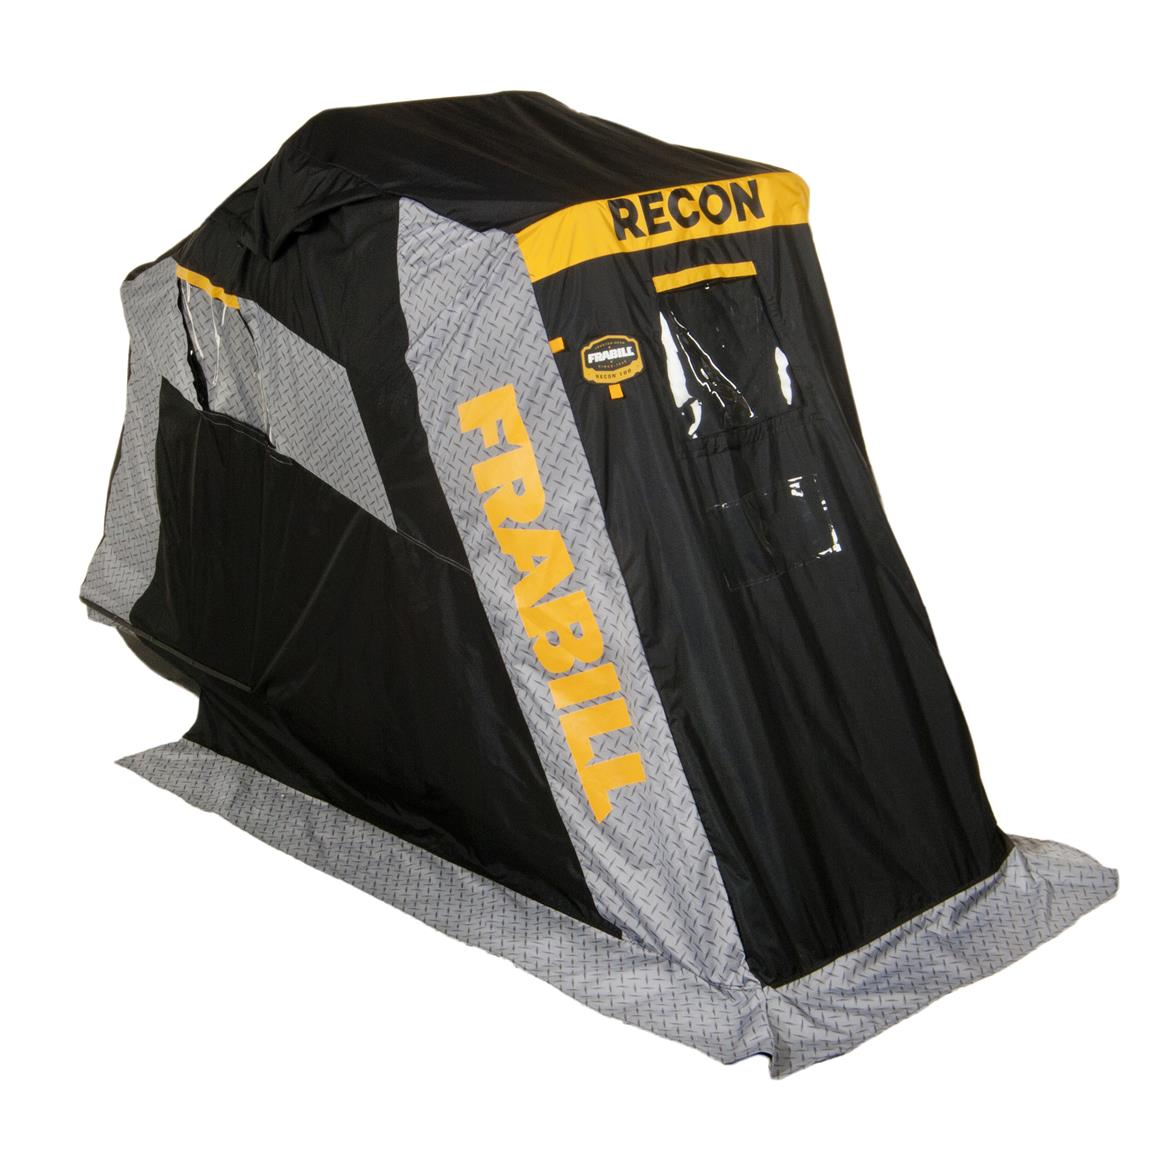 Frabill Recon 100 Ice Shelter, Flip Over, Single Person